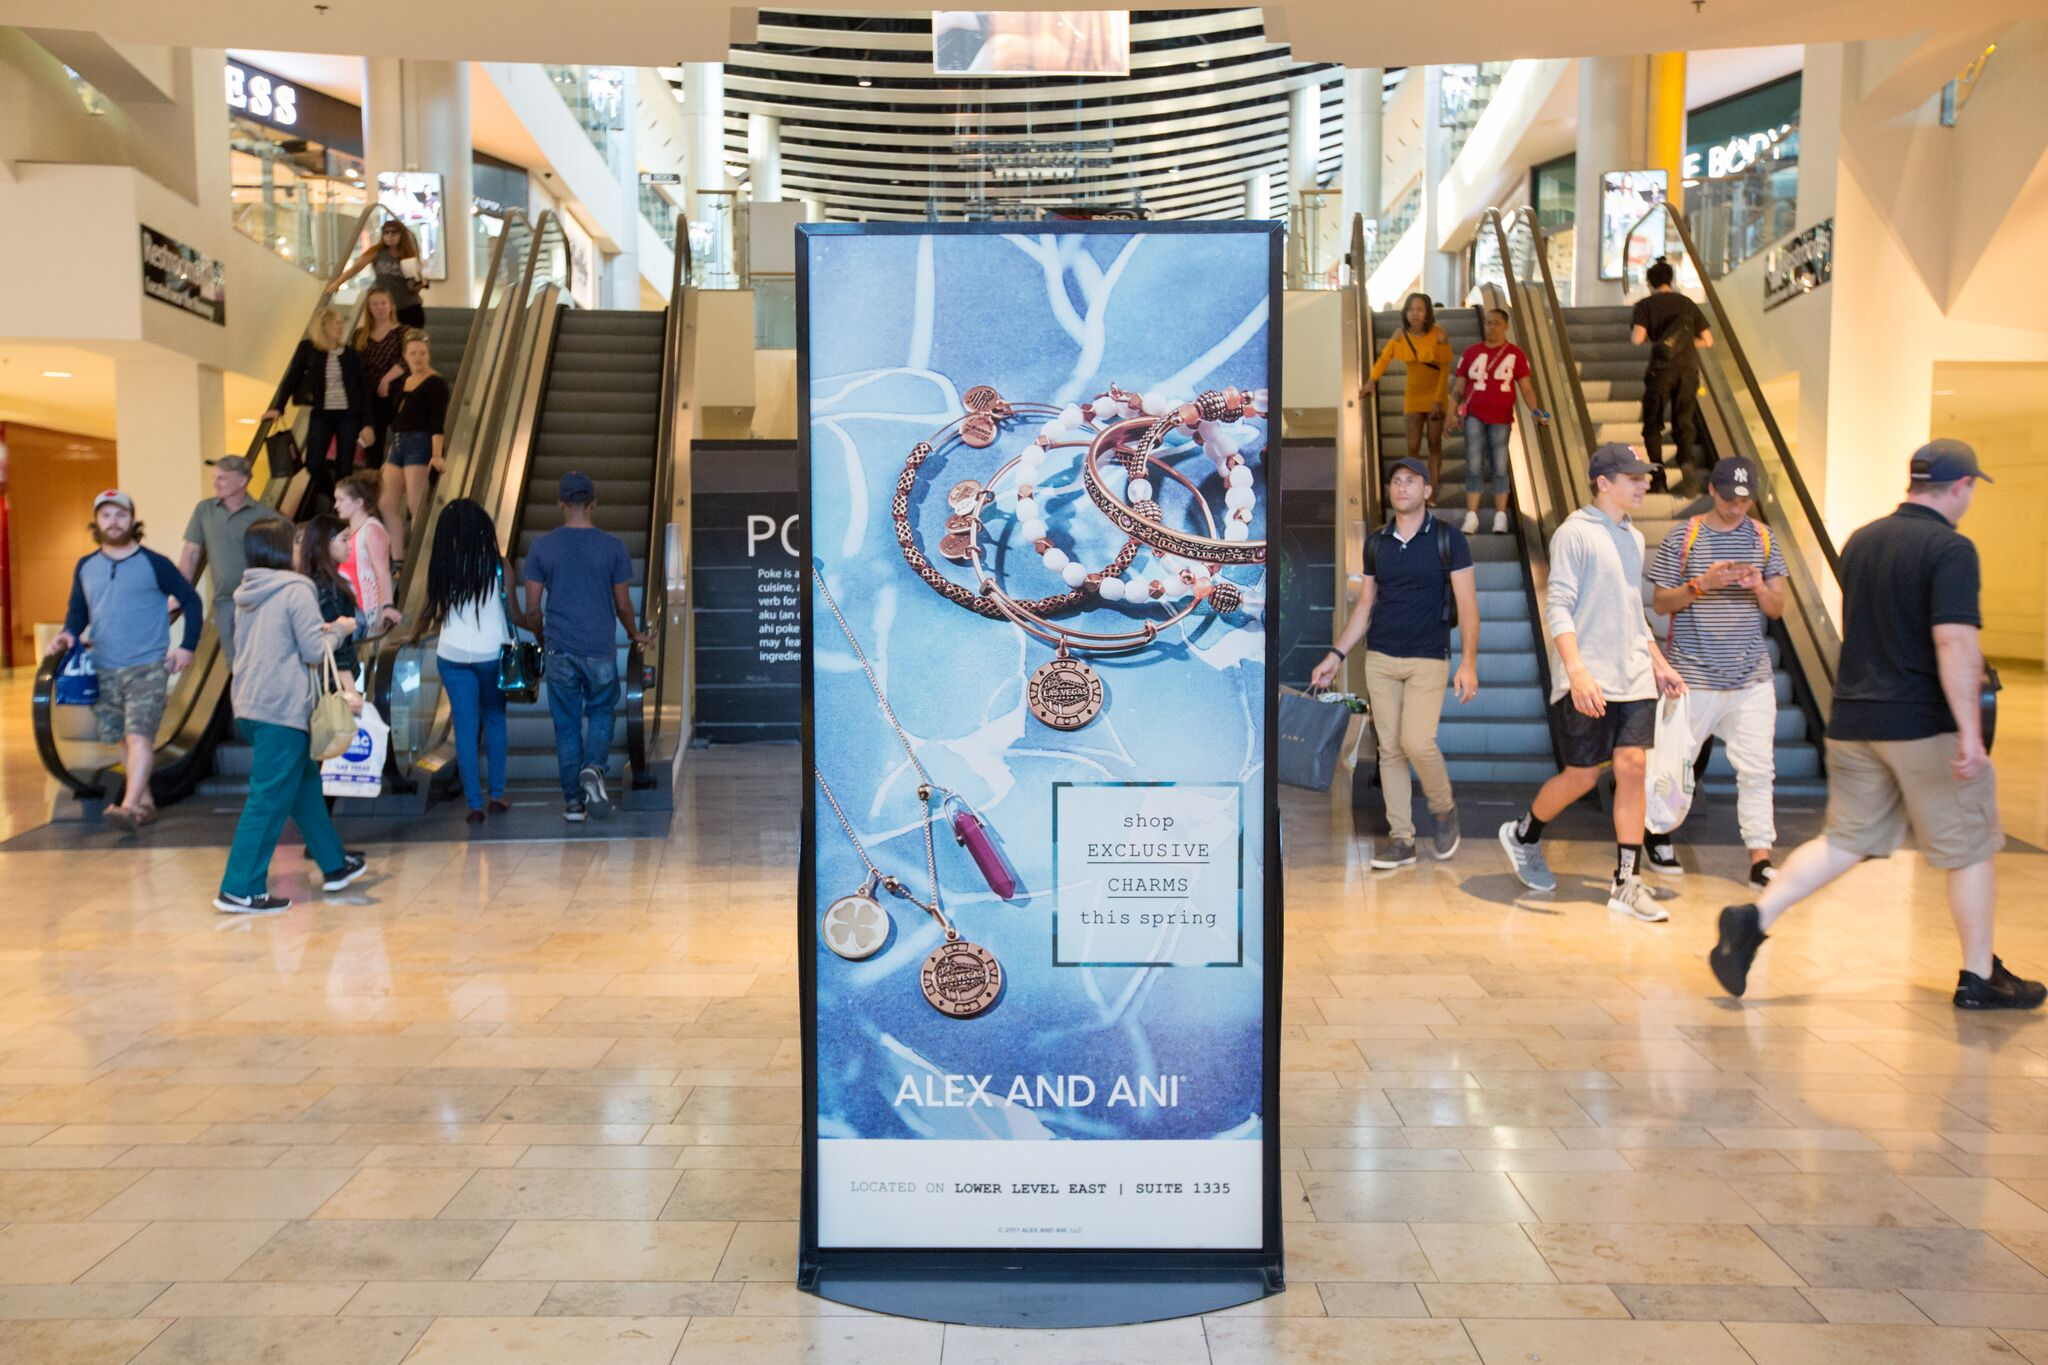 In a walkway next to a property's elevators, a standalone sign advertises Alex and Ani